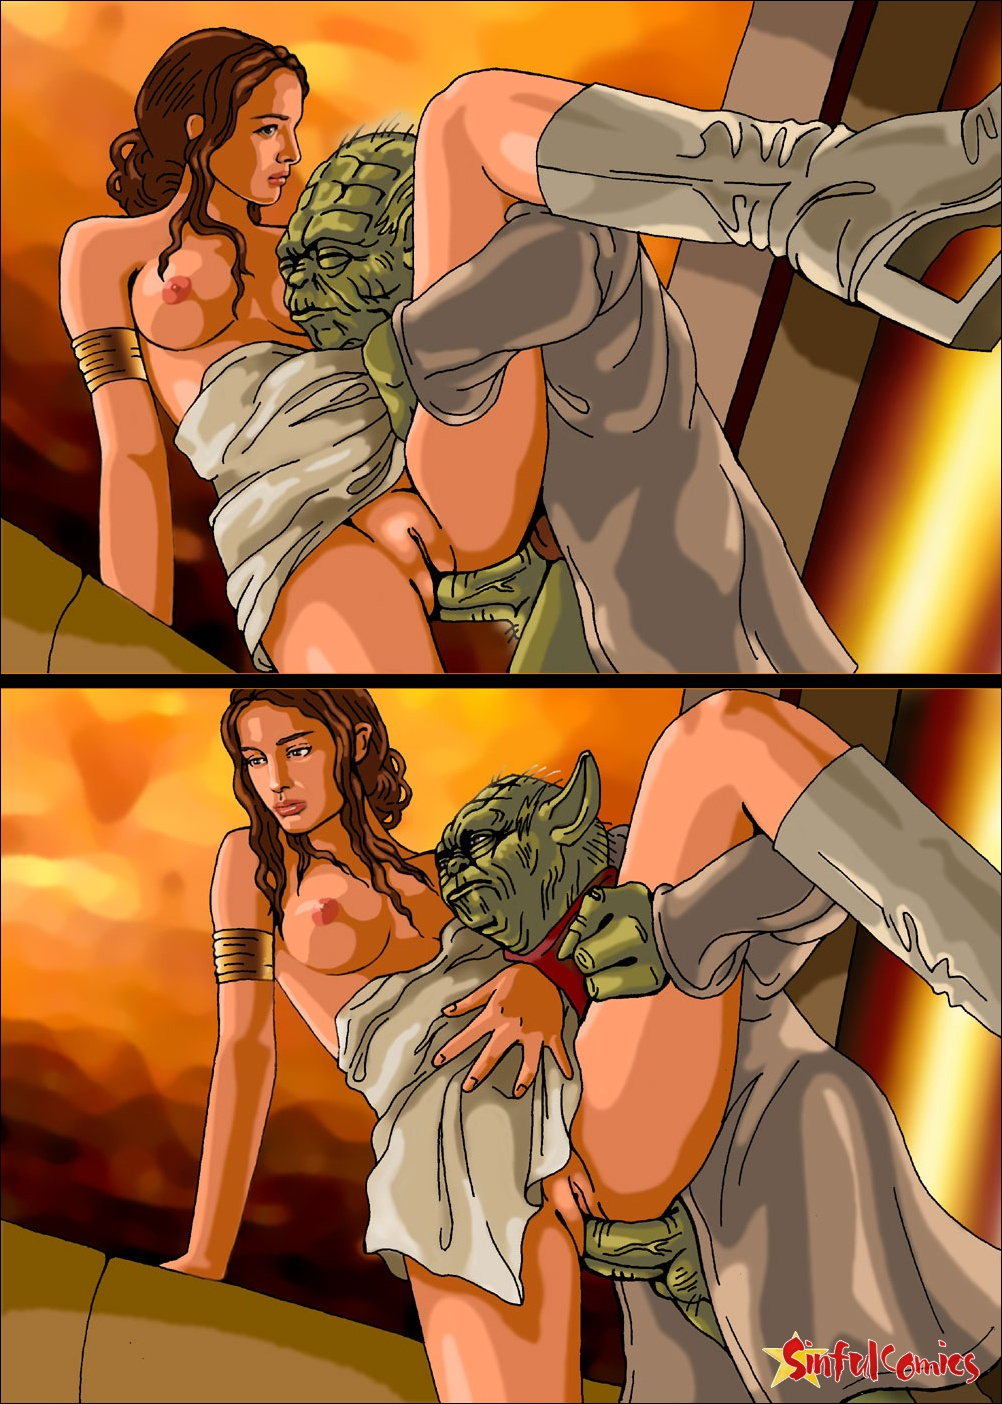 Sex star wars movie pictures hentai nudes tube